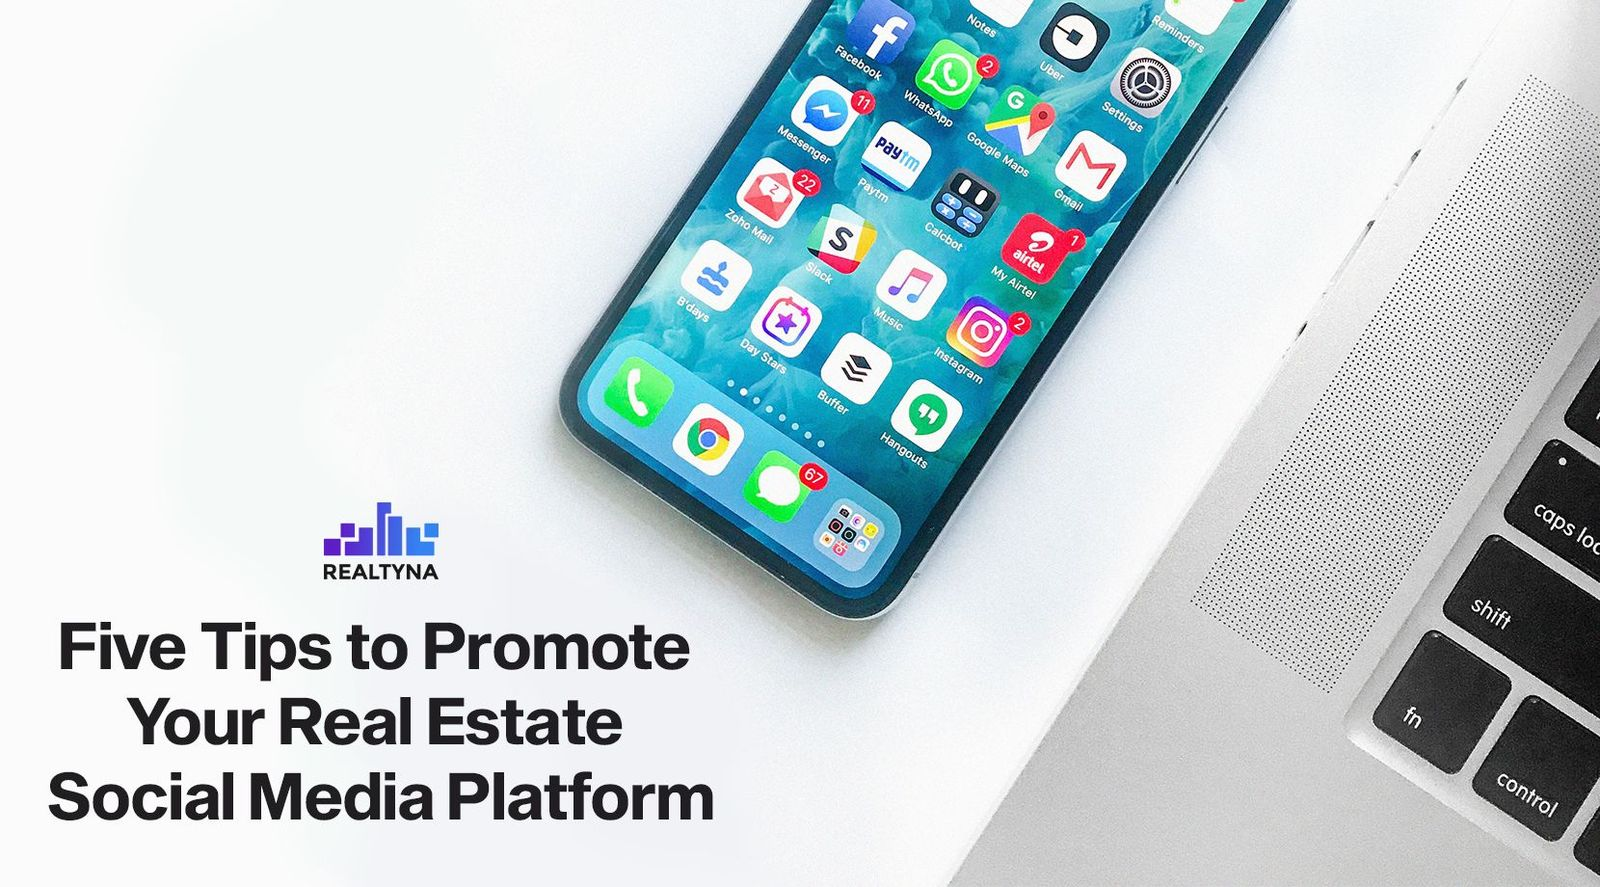 Five Tips to Promote Your Real Estate Social Media Platform